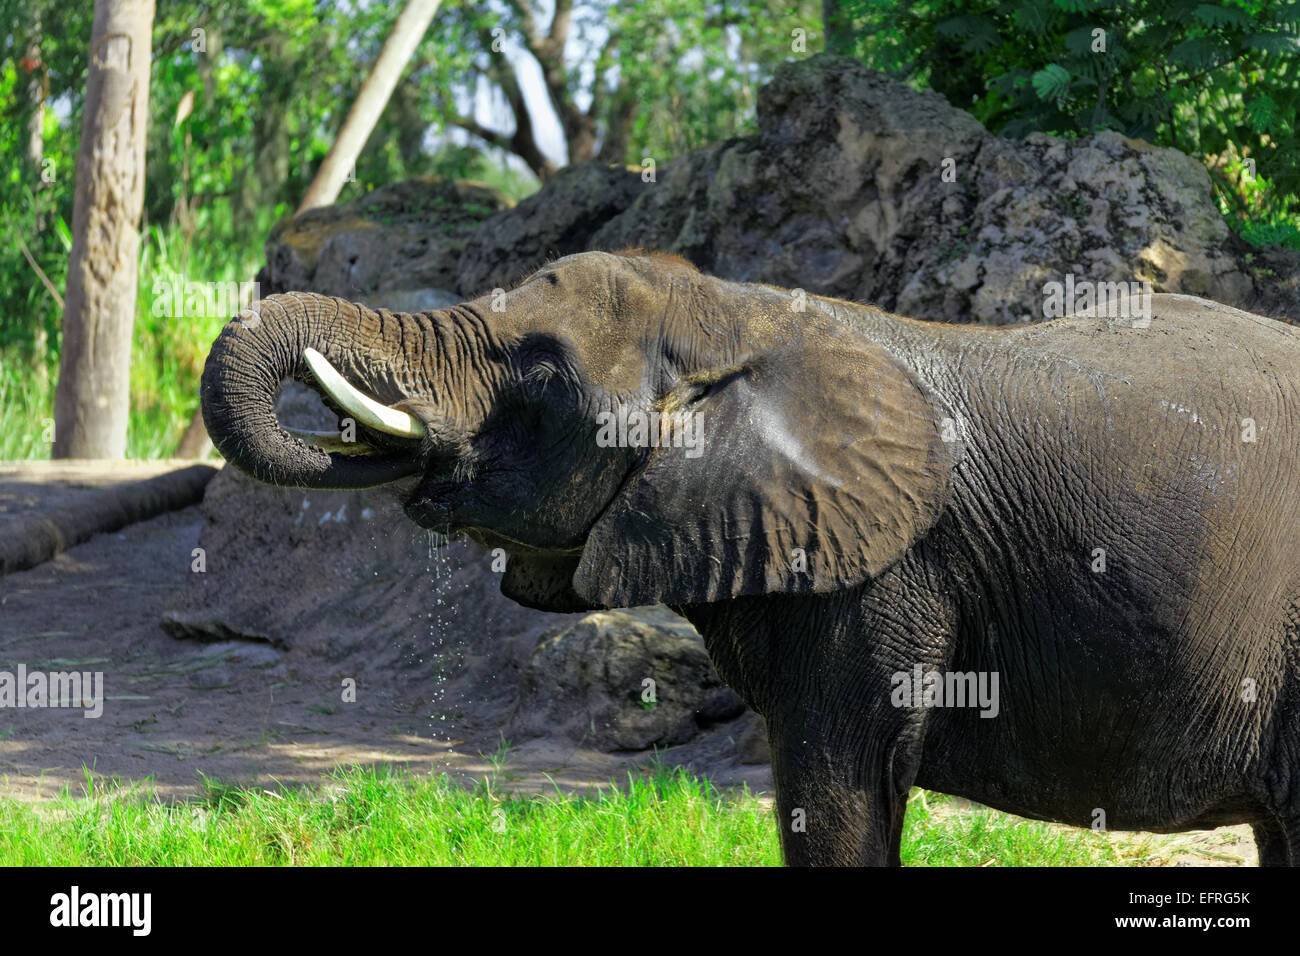 An African elephant standing in a watering hole, taking a drink - Stock Image